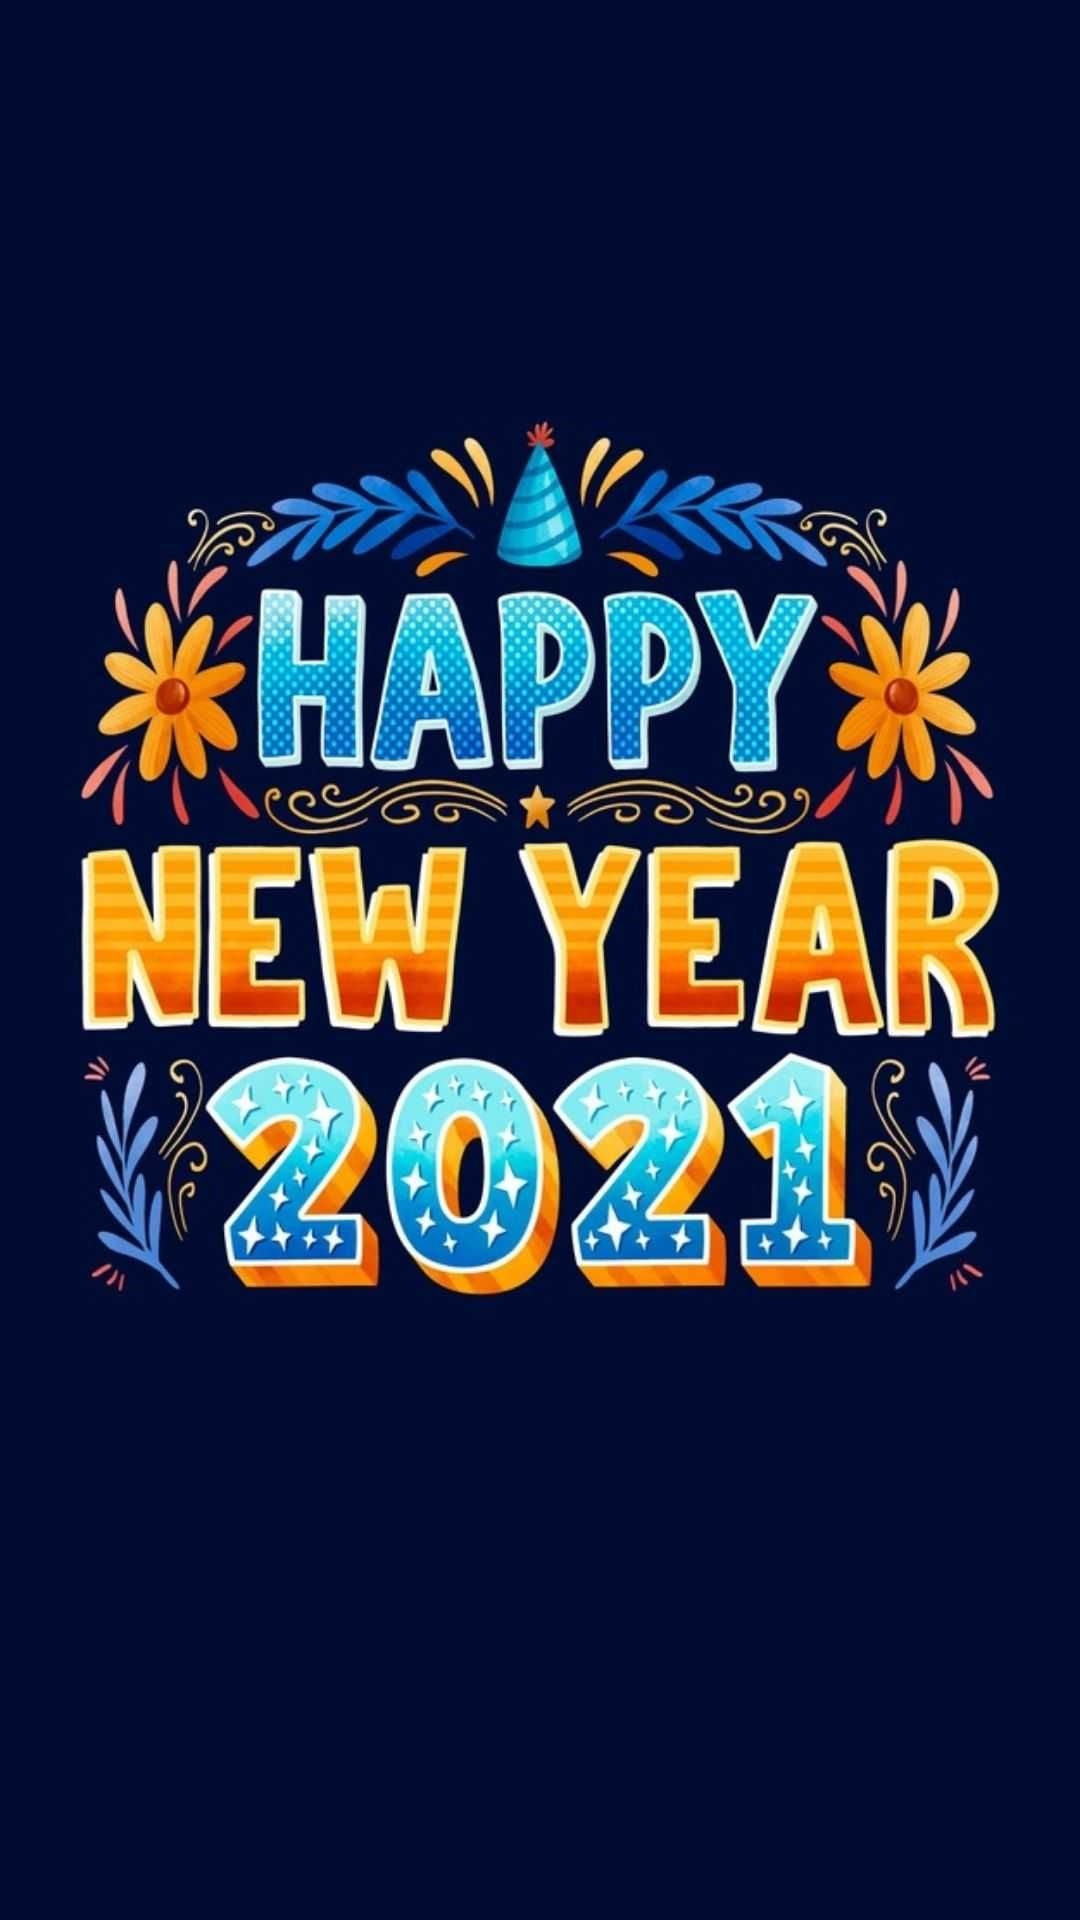 Wallpapers For Friends New Year Free Hd Download Iphone Android Backgrounds Happy New Year Wallpaper Friends Wallpaper Happy New Year Pictures